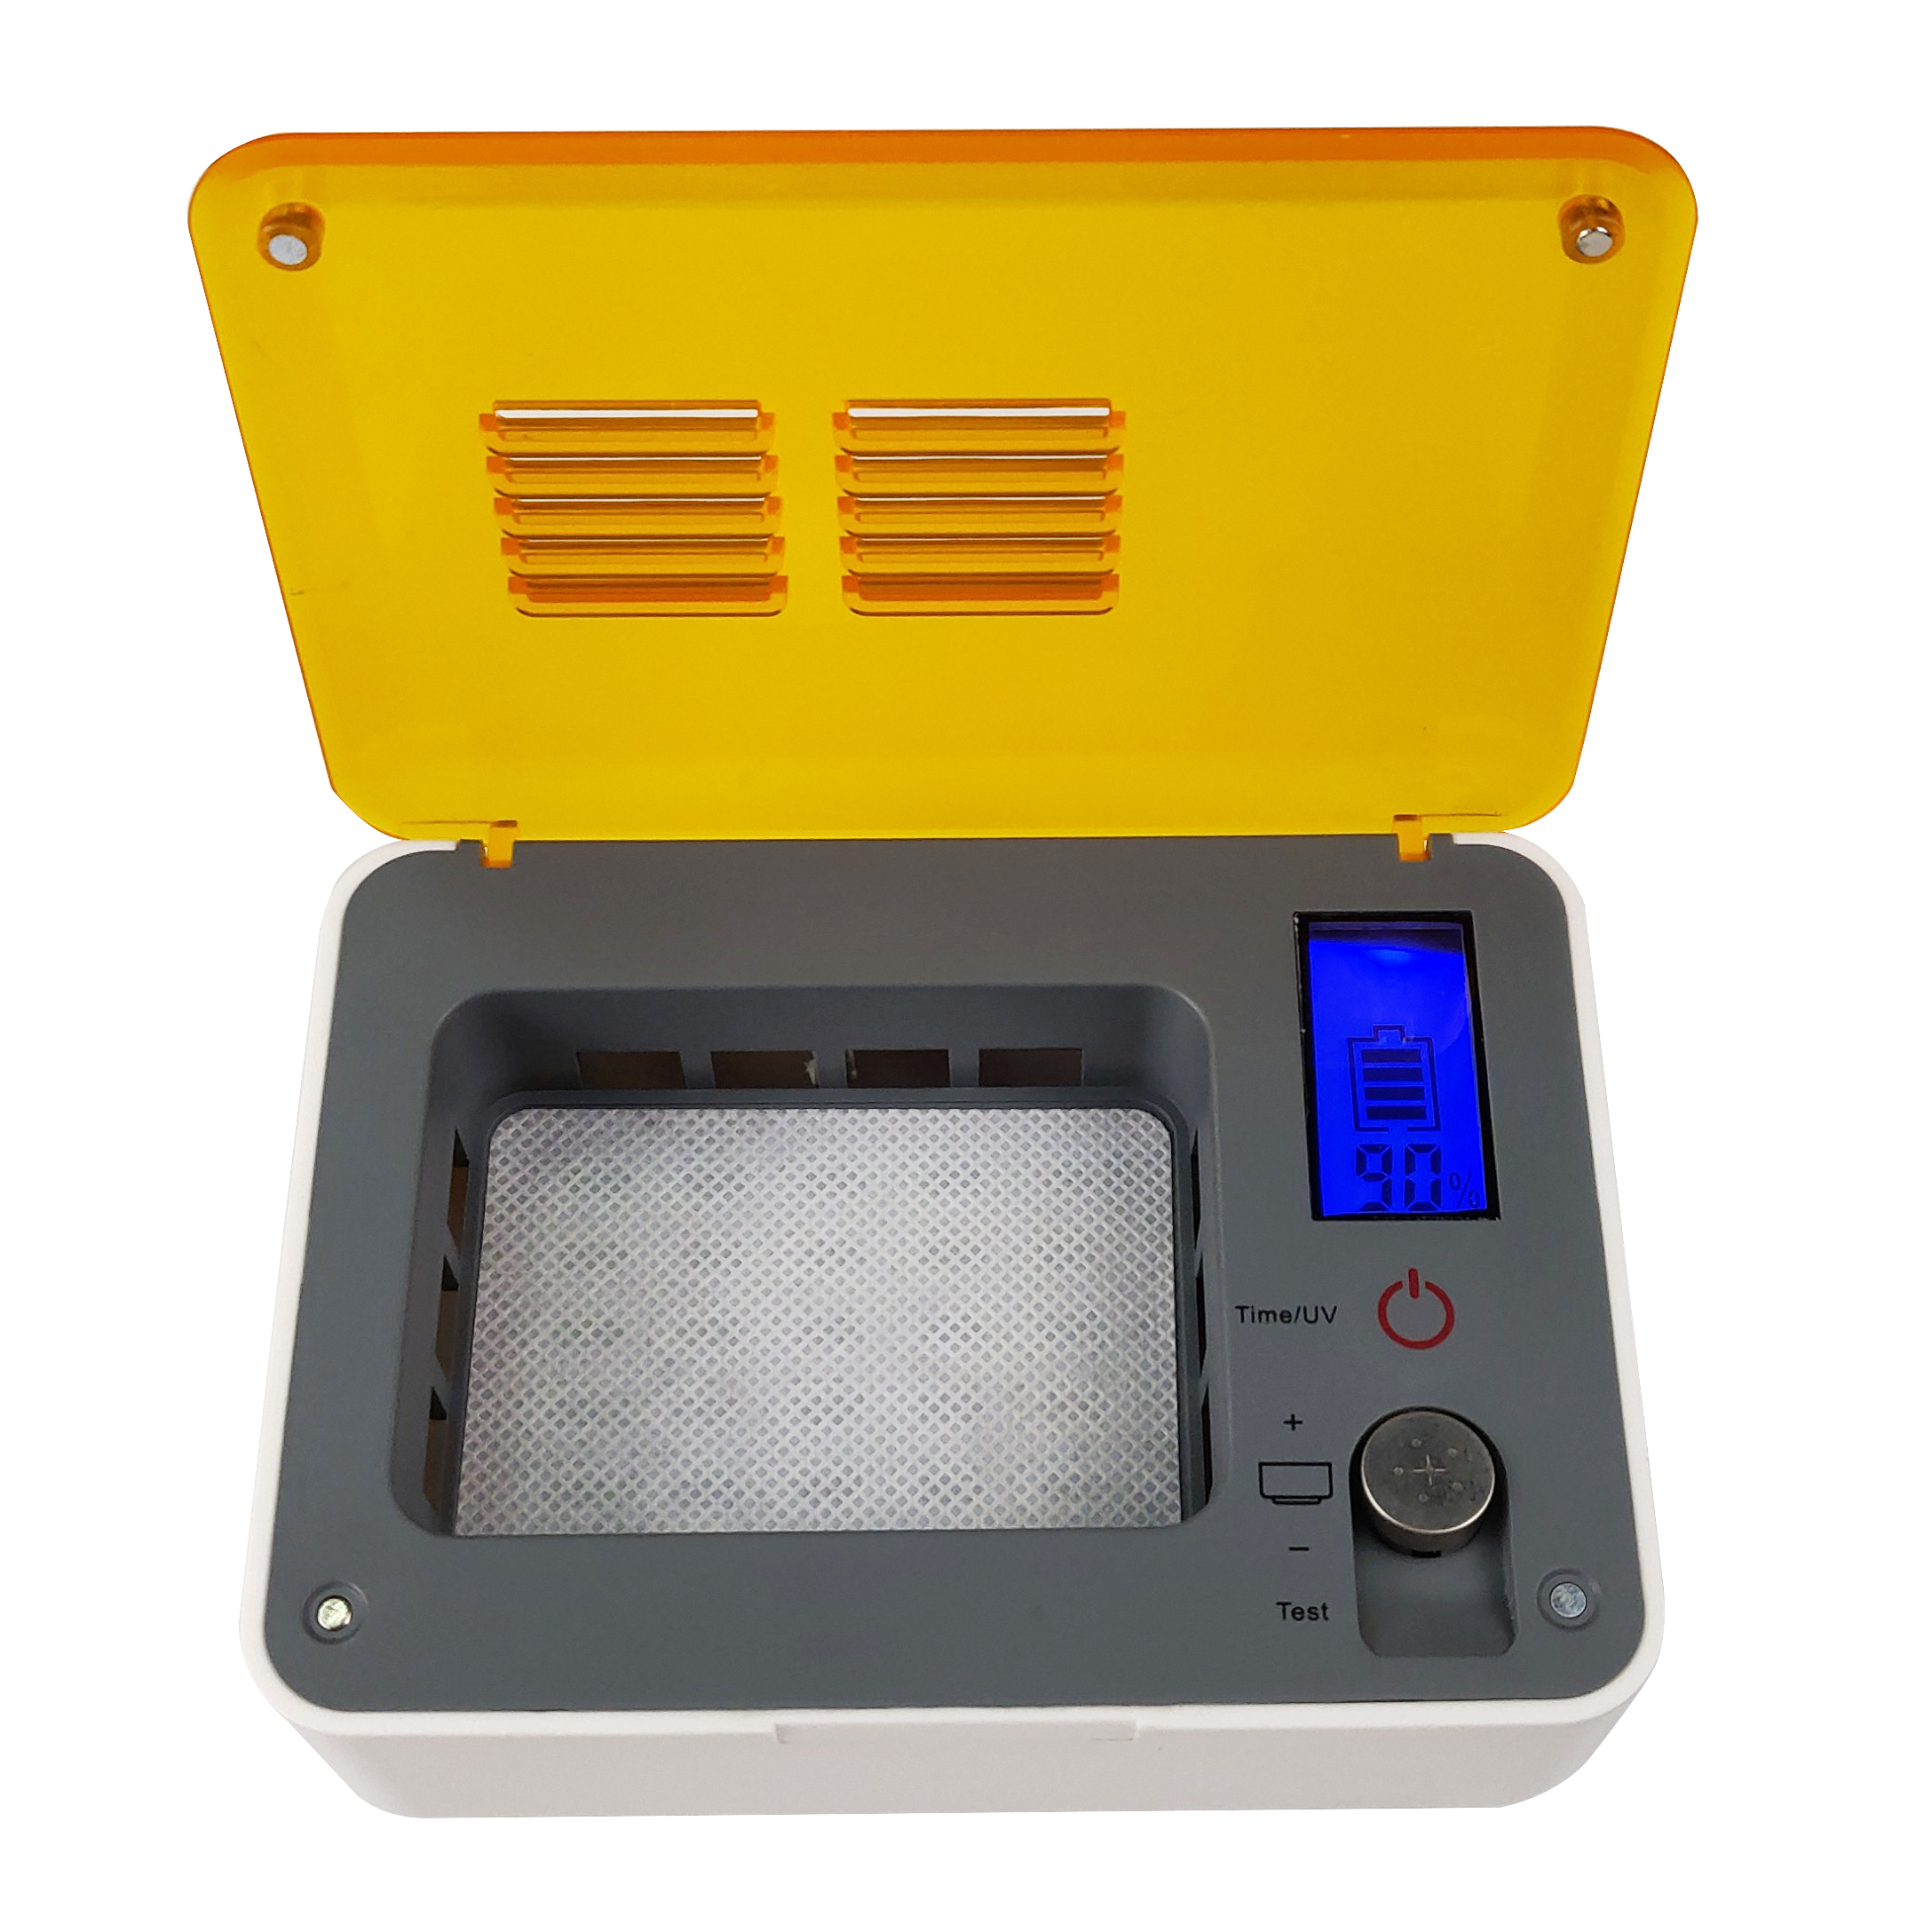 Digital Hearing Aid Accessories Drying Dehumidifier Box With Timing And UV Function